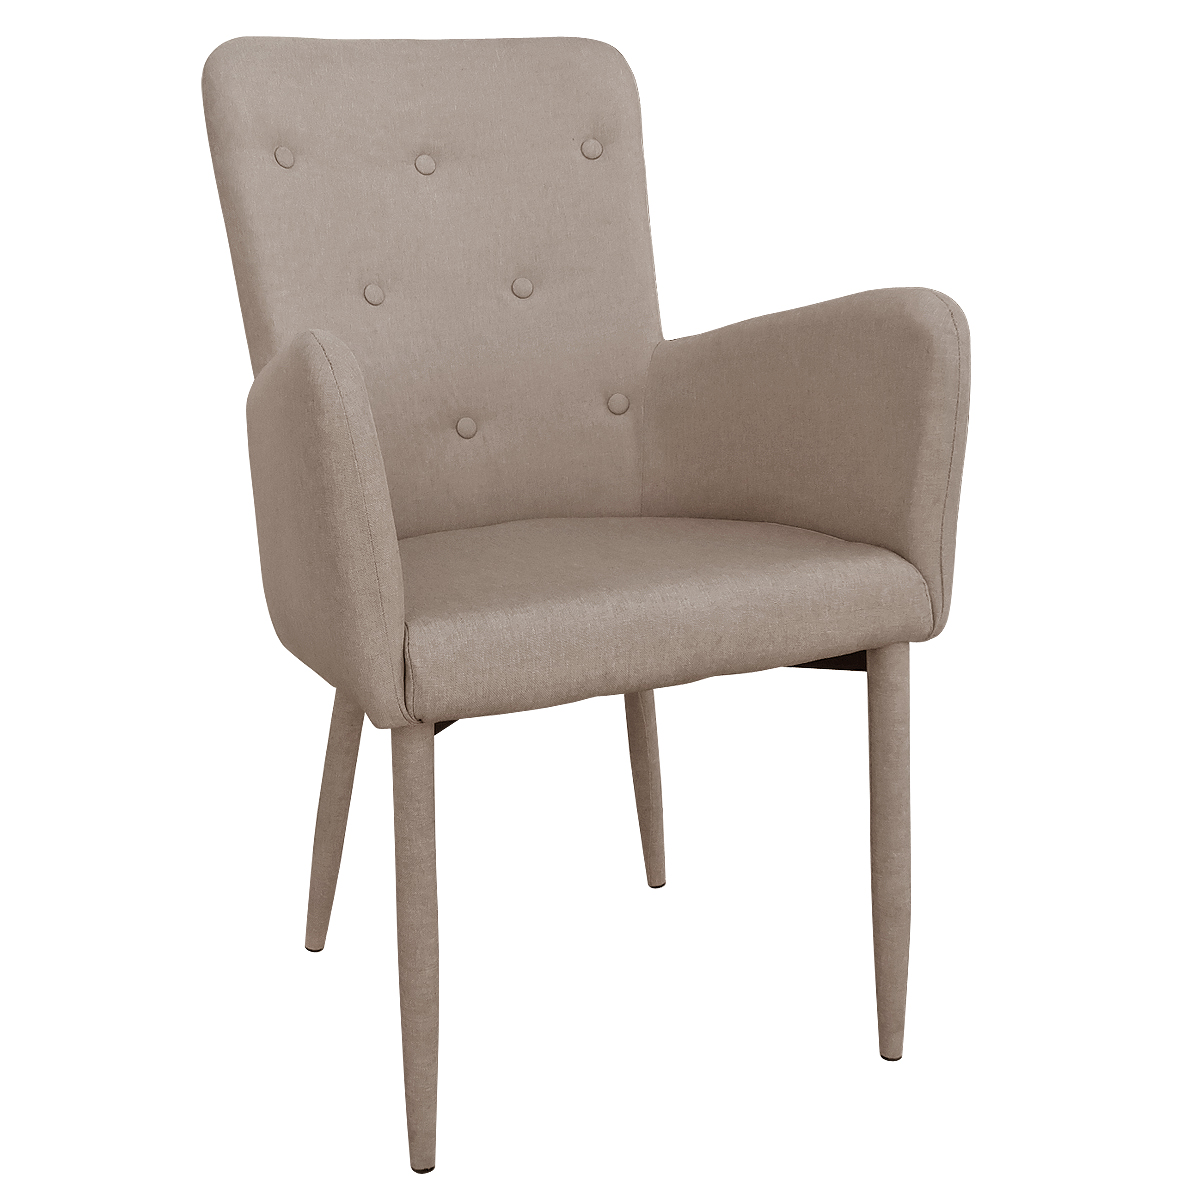 Barton Chair Barton Arm Chair Mocha